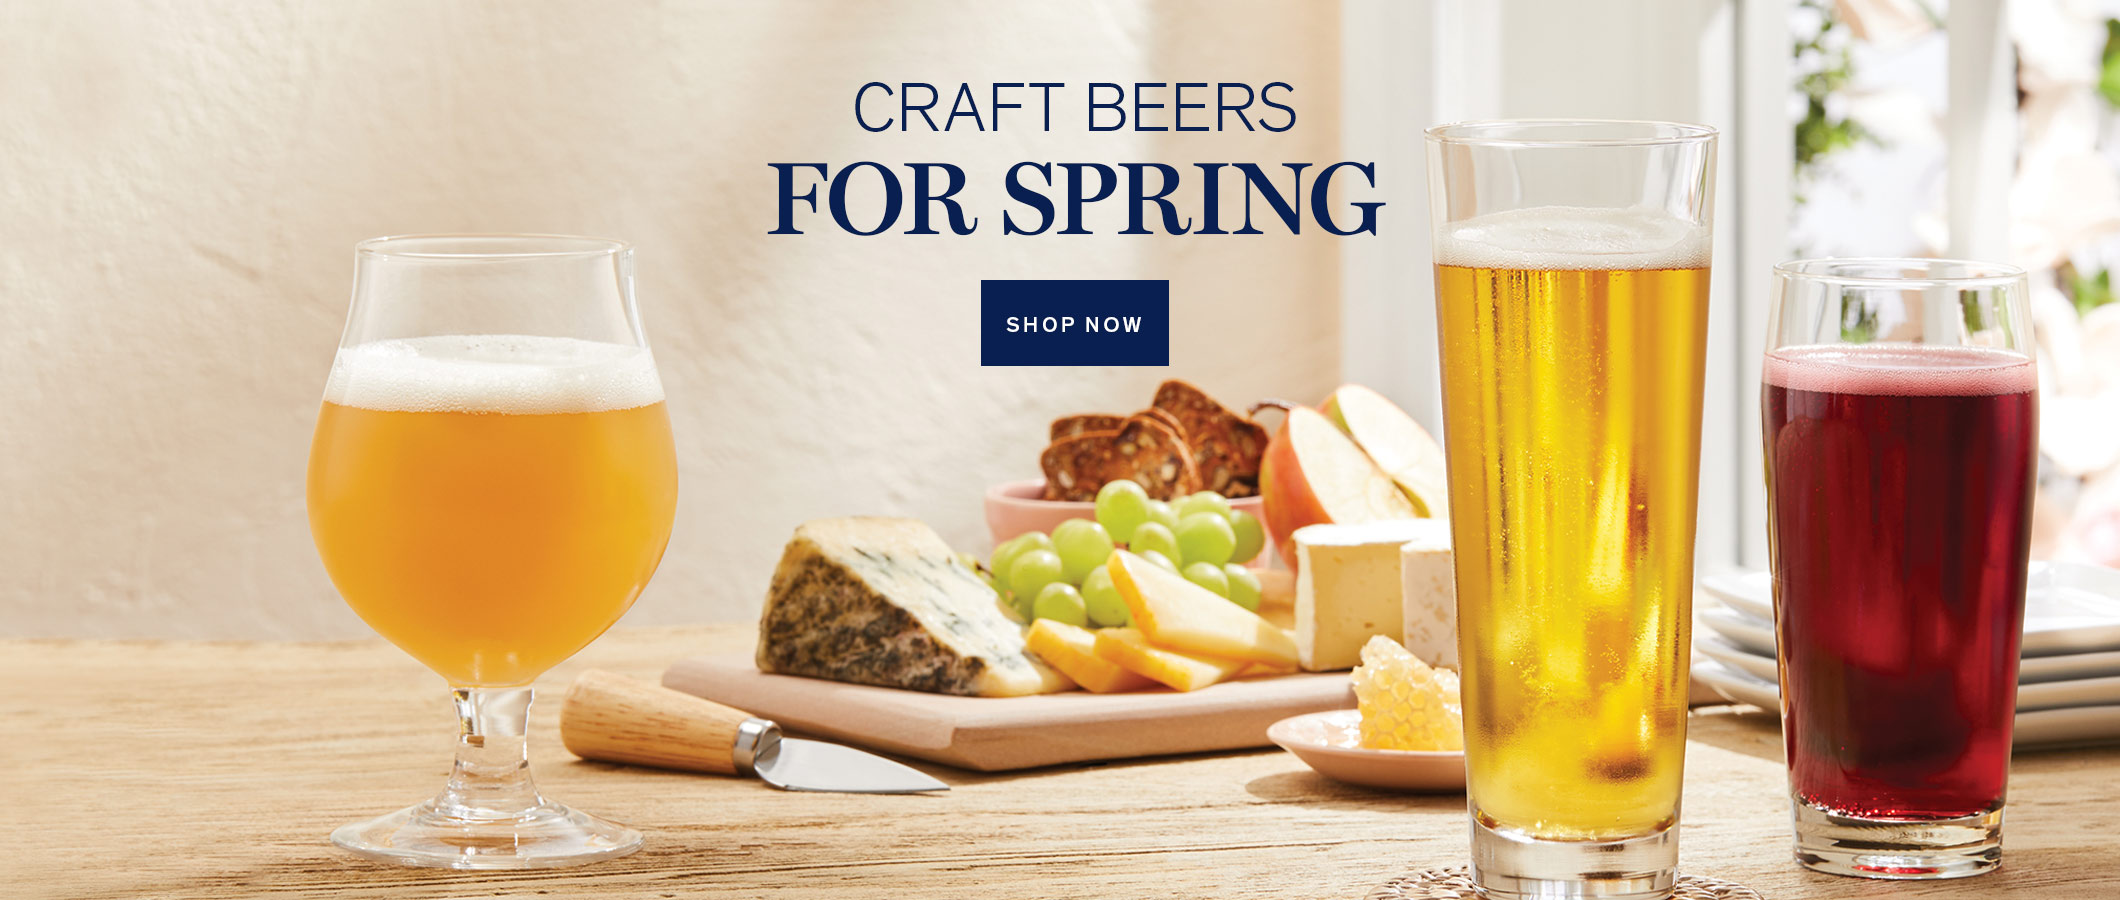 Craft Beers for Spring